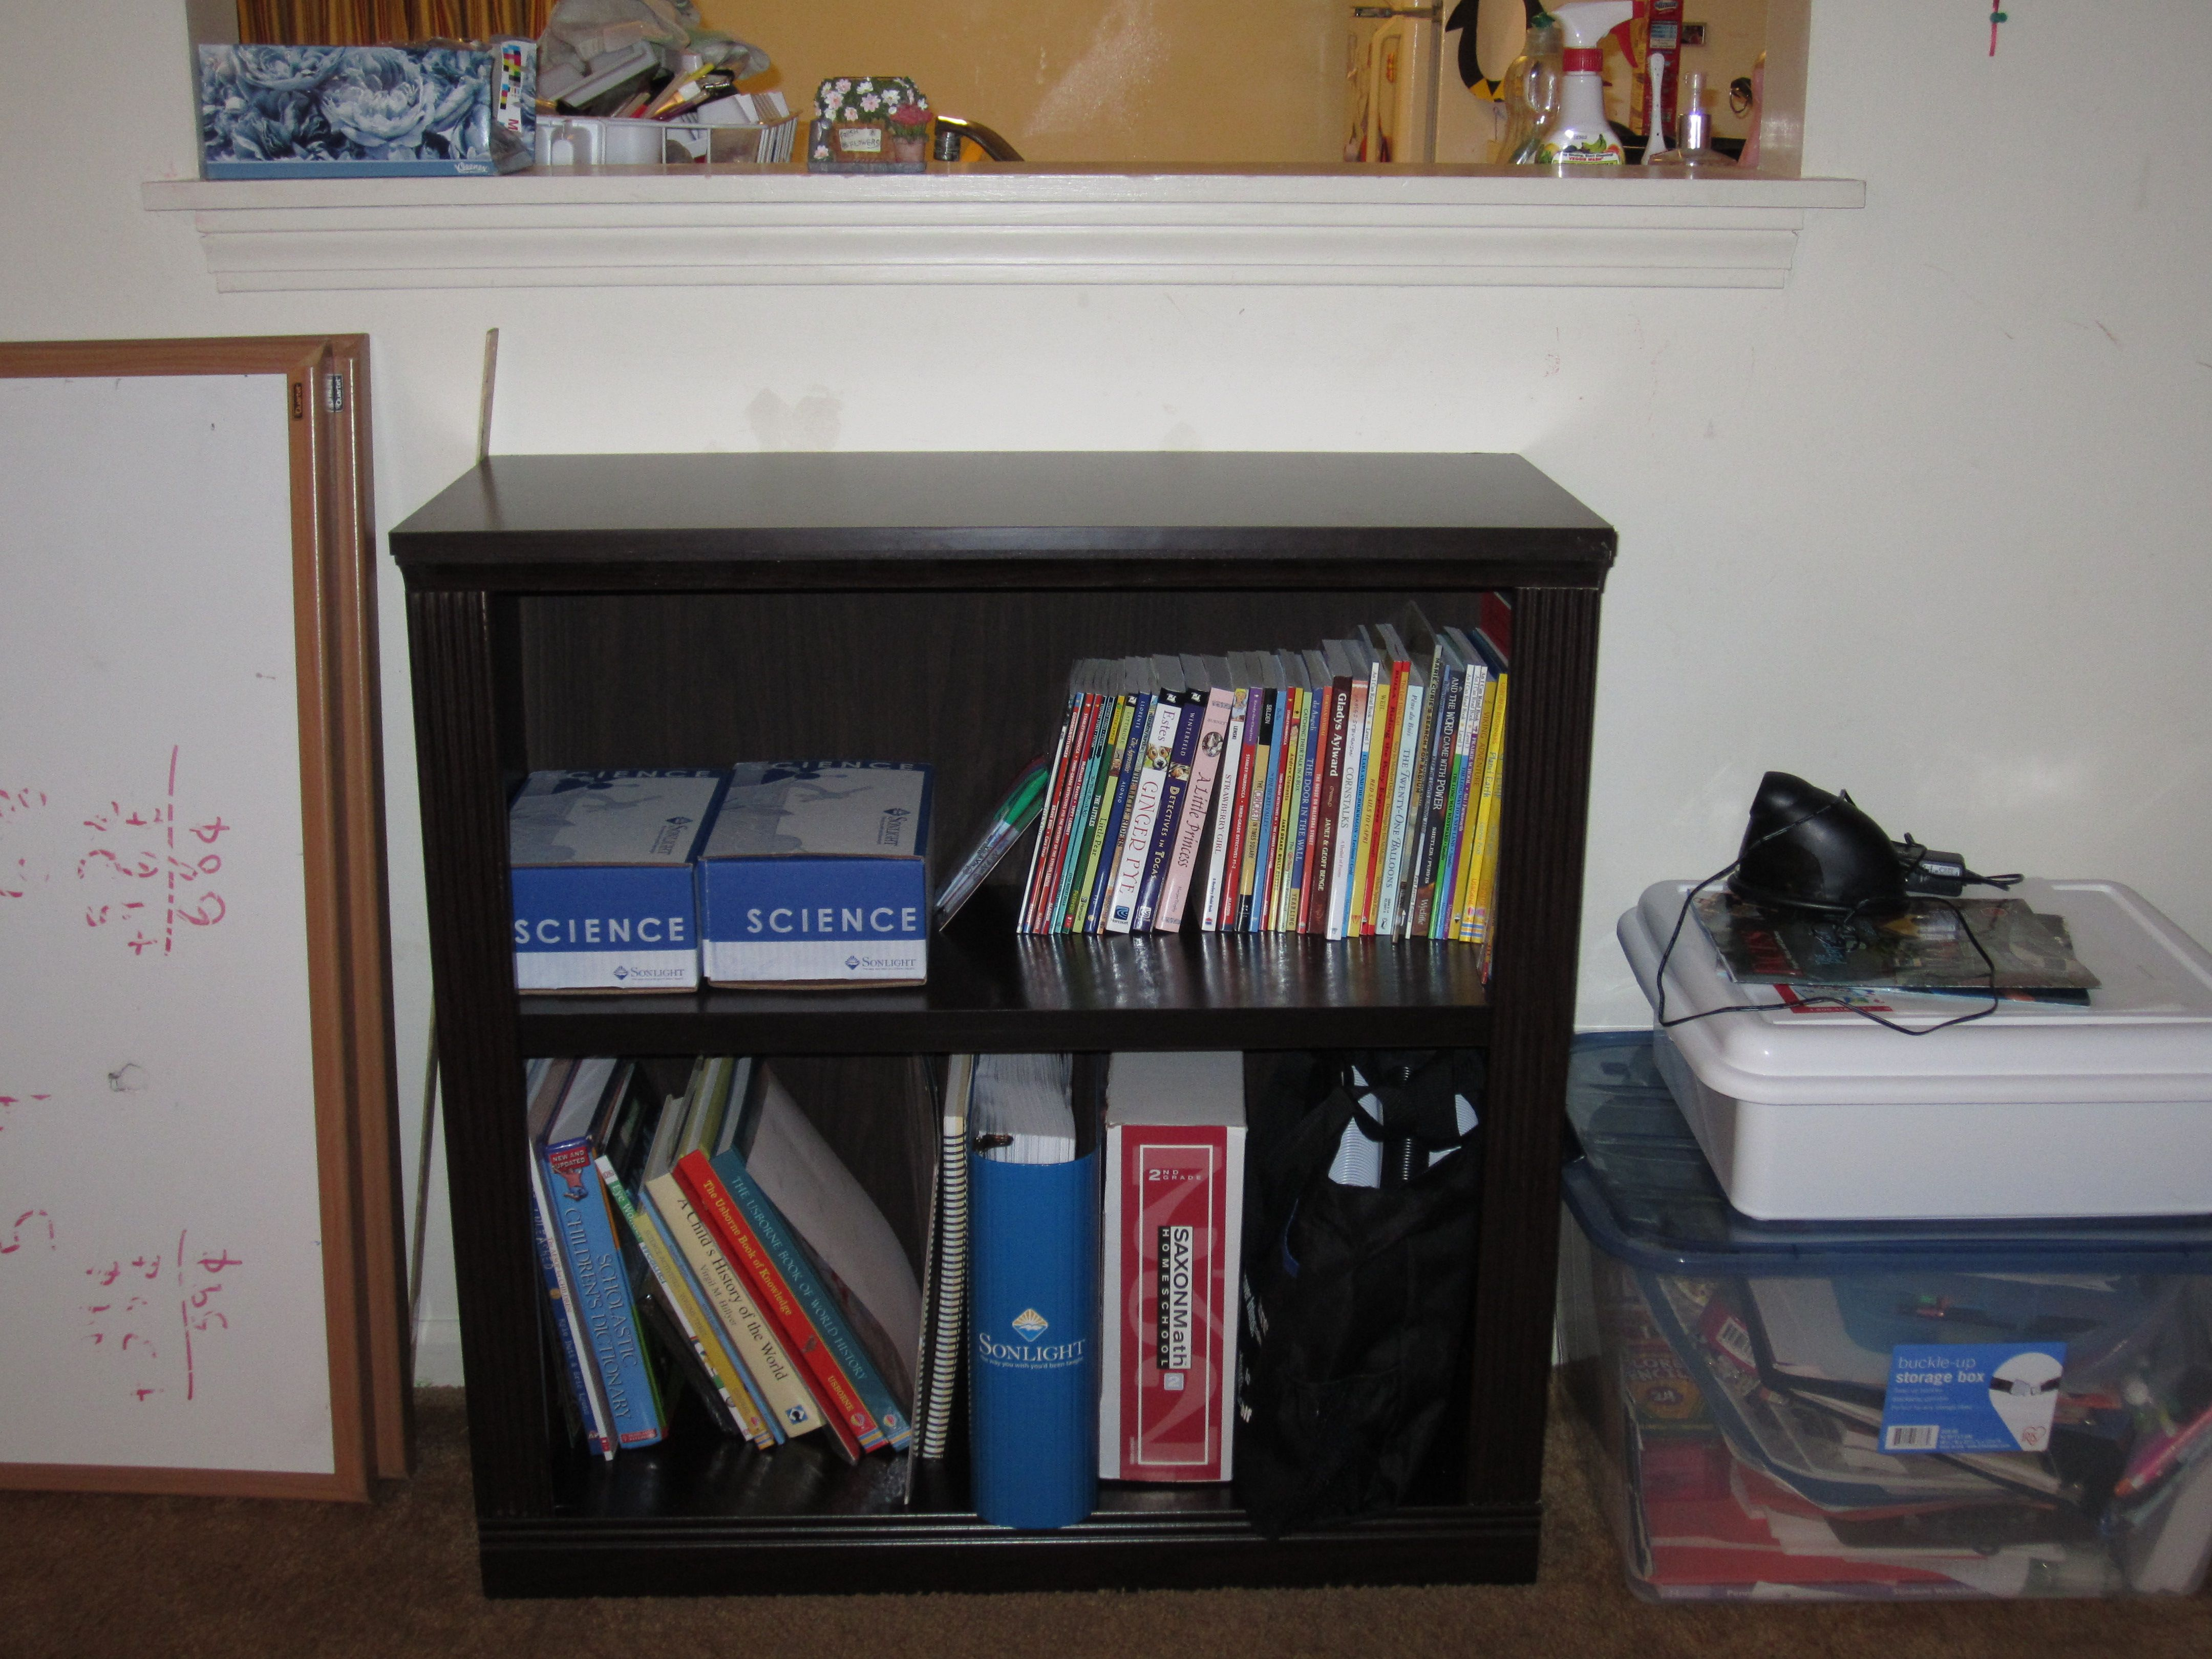 just bookcases big laminated white shade fashionable area lamp room for size desk wooden frame solid the of black anymore nerd hardowrd wall rugs flower bookcase picture full purple staples medium vase varnished amaranth floor not decorate